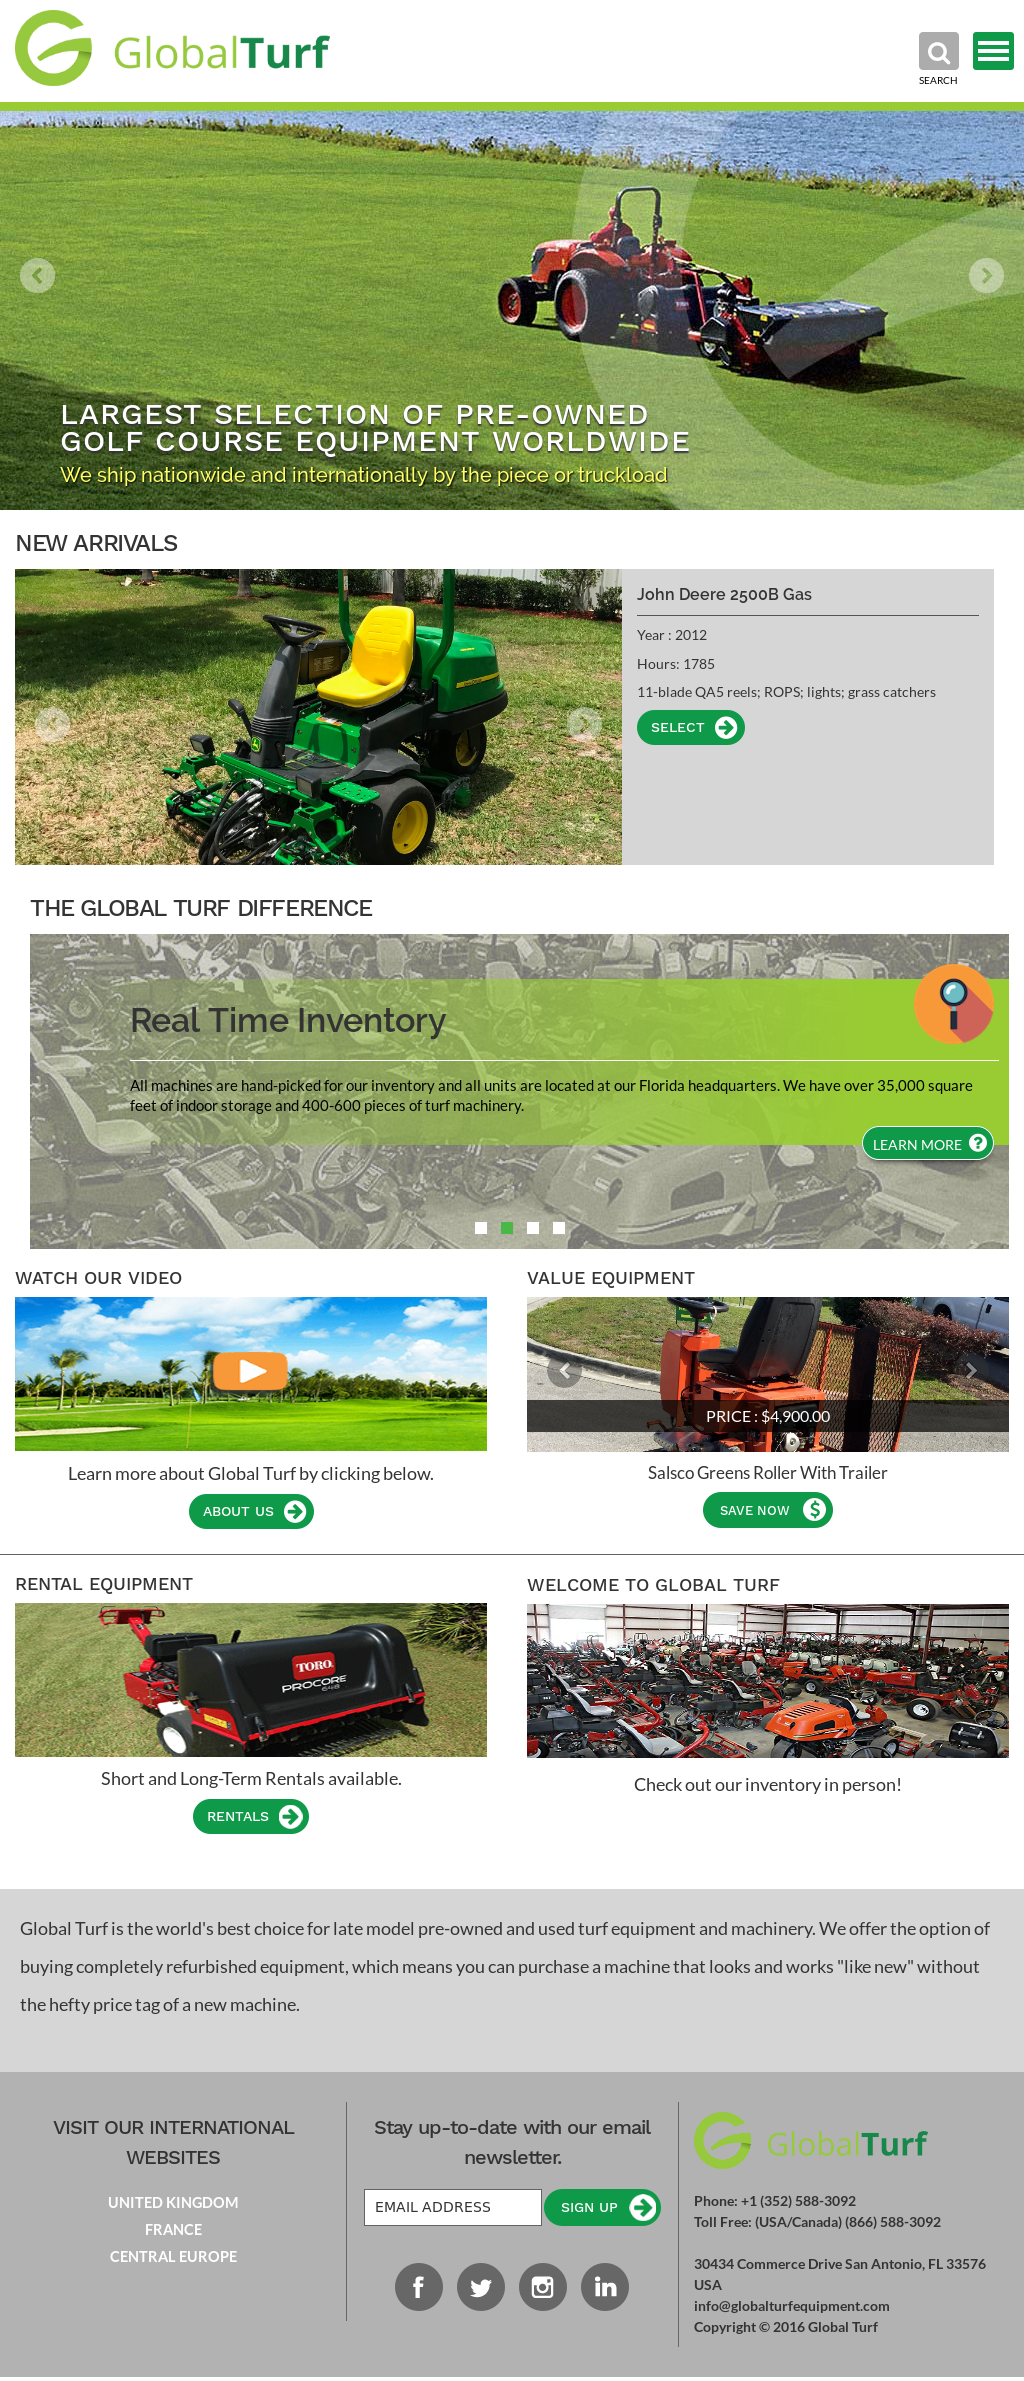 Global Turf Equipment Competitors, Revenue and Employees